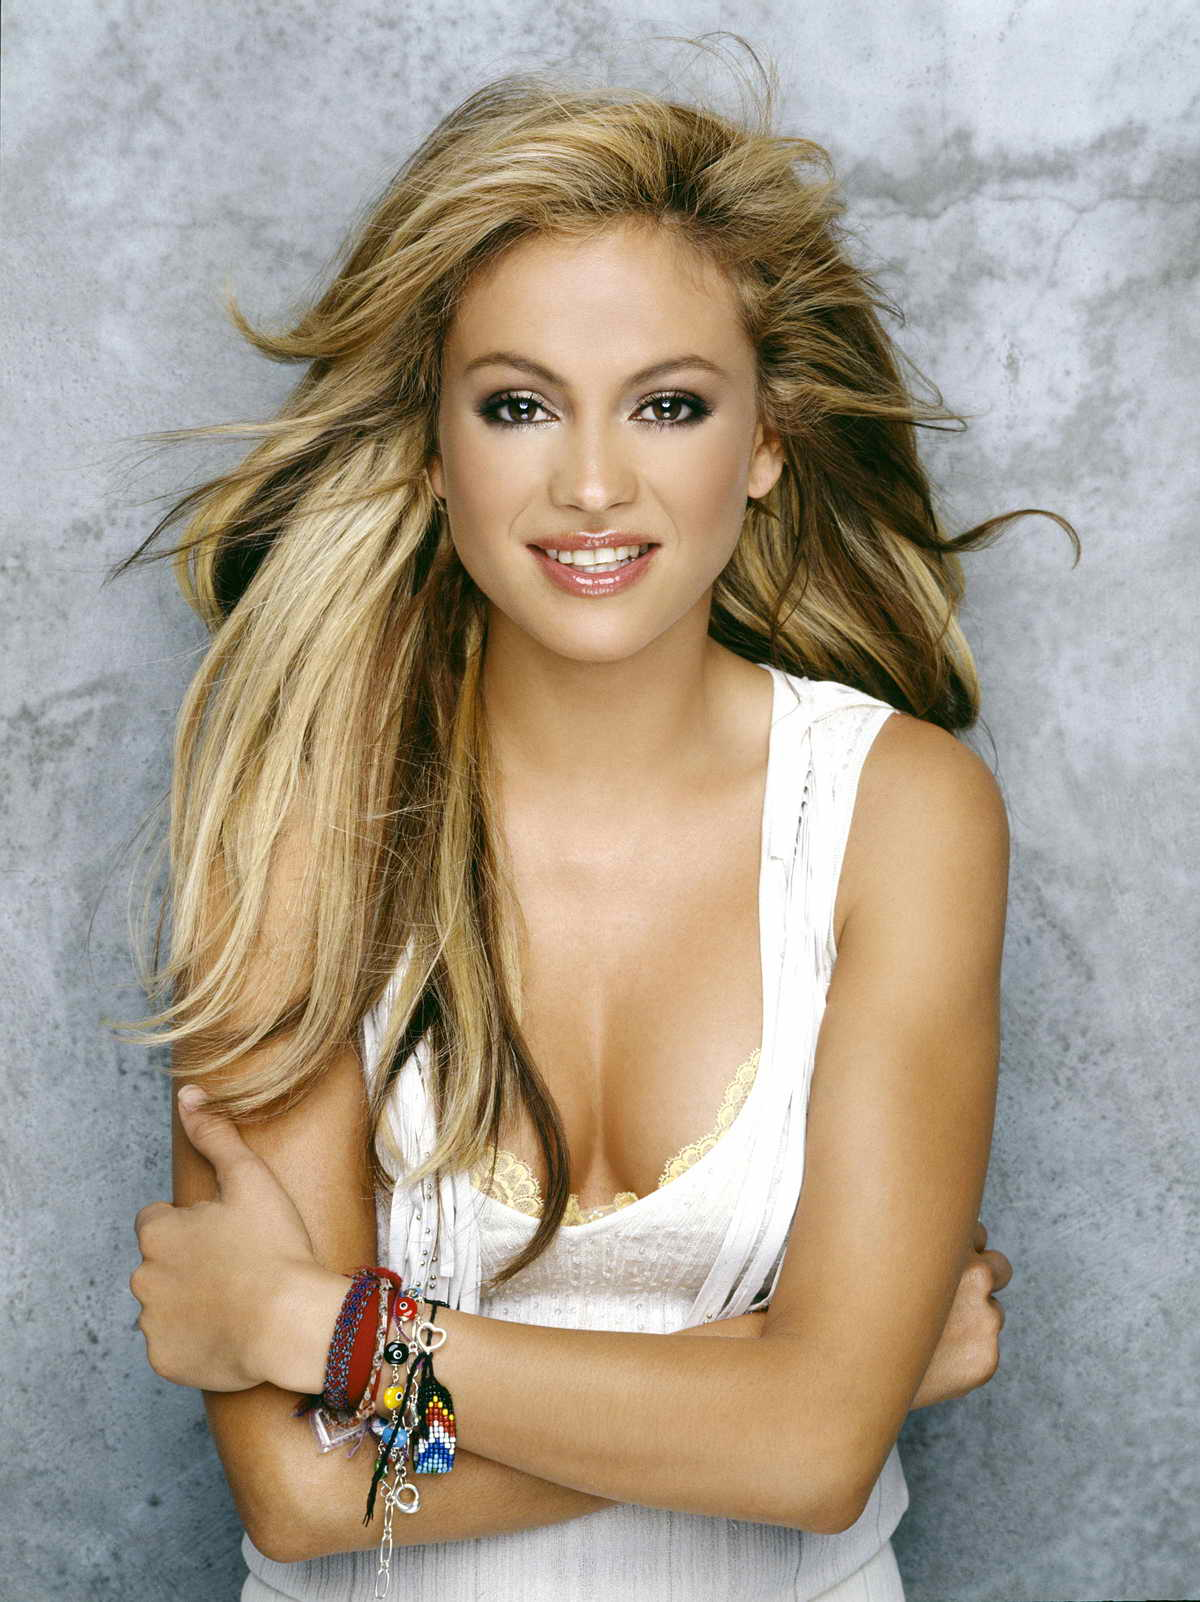 paulina latino personals Buoyed by a pair of chart-topping singles (no me enseñaste and tu y yo), this album was thalía's first to hit number one on the top latin albums chart, reaching number 22 on the top 200 -- a feat at the time.